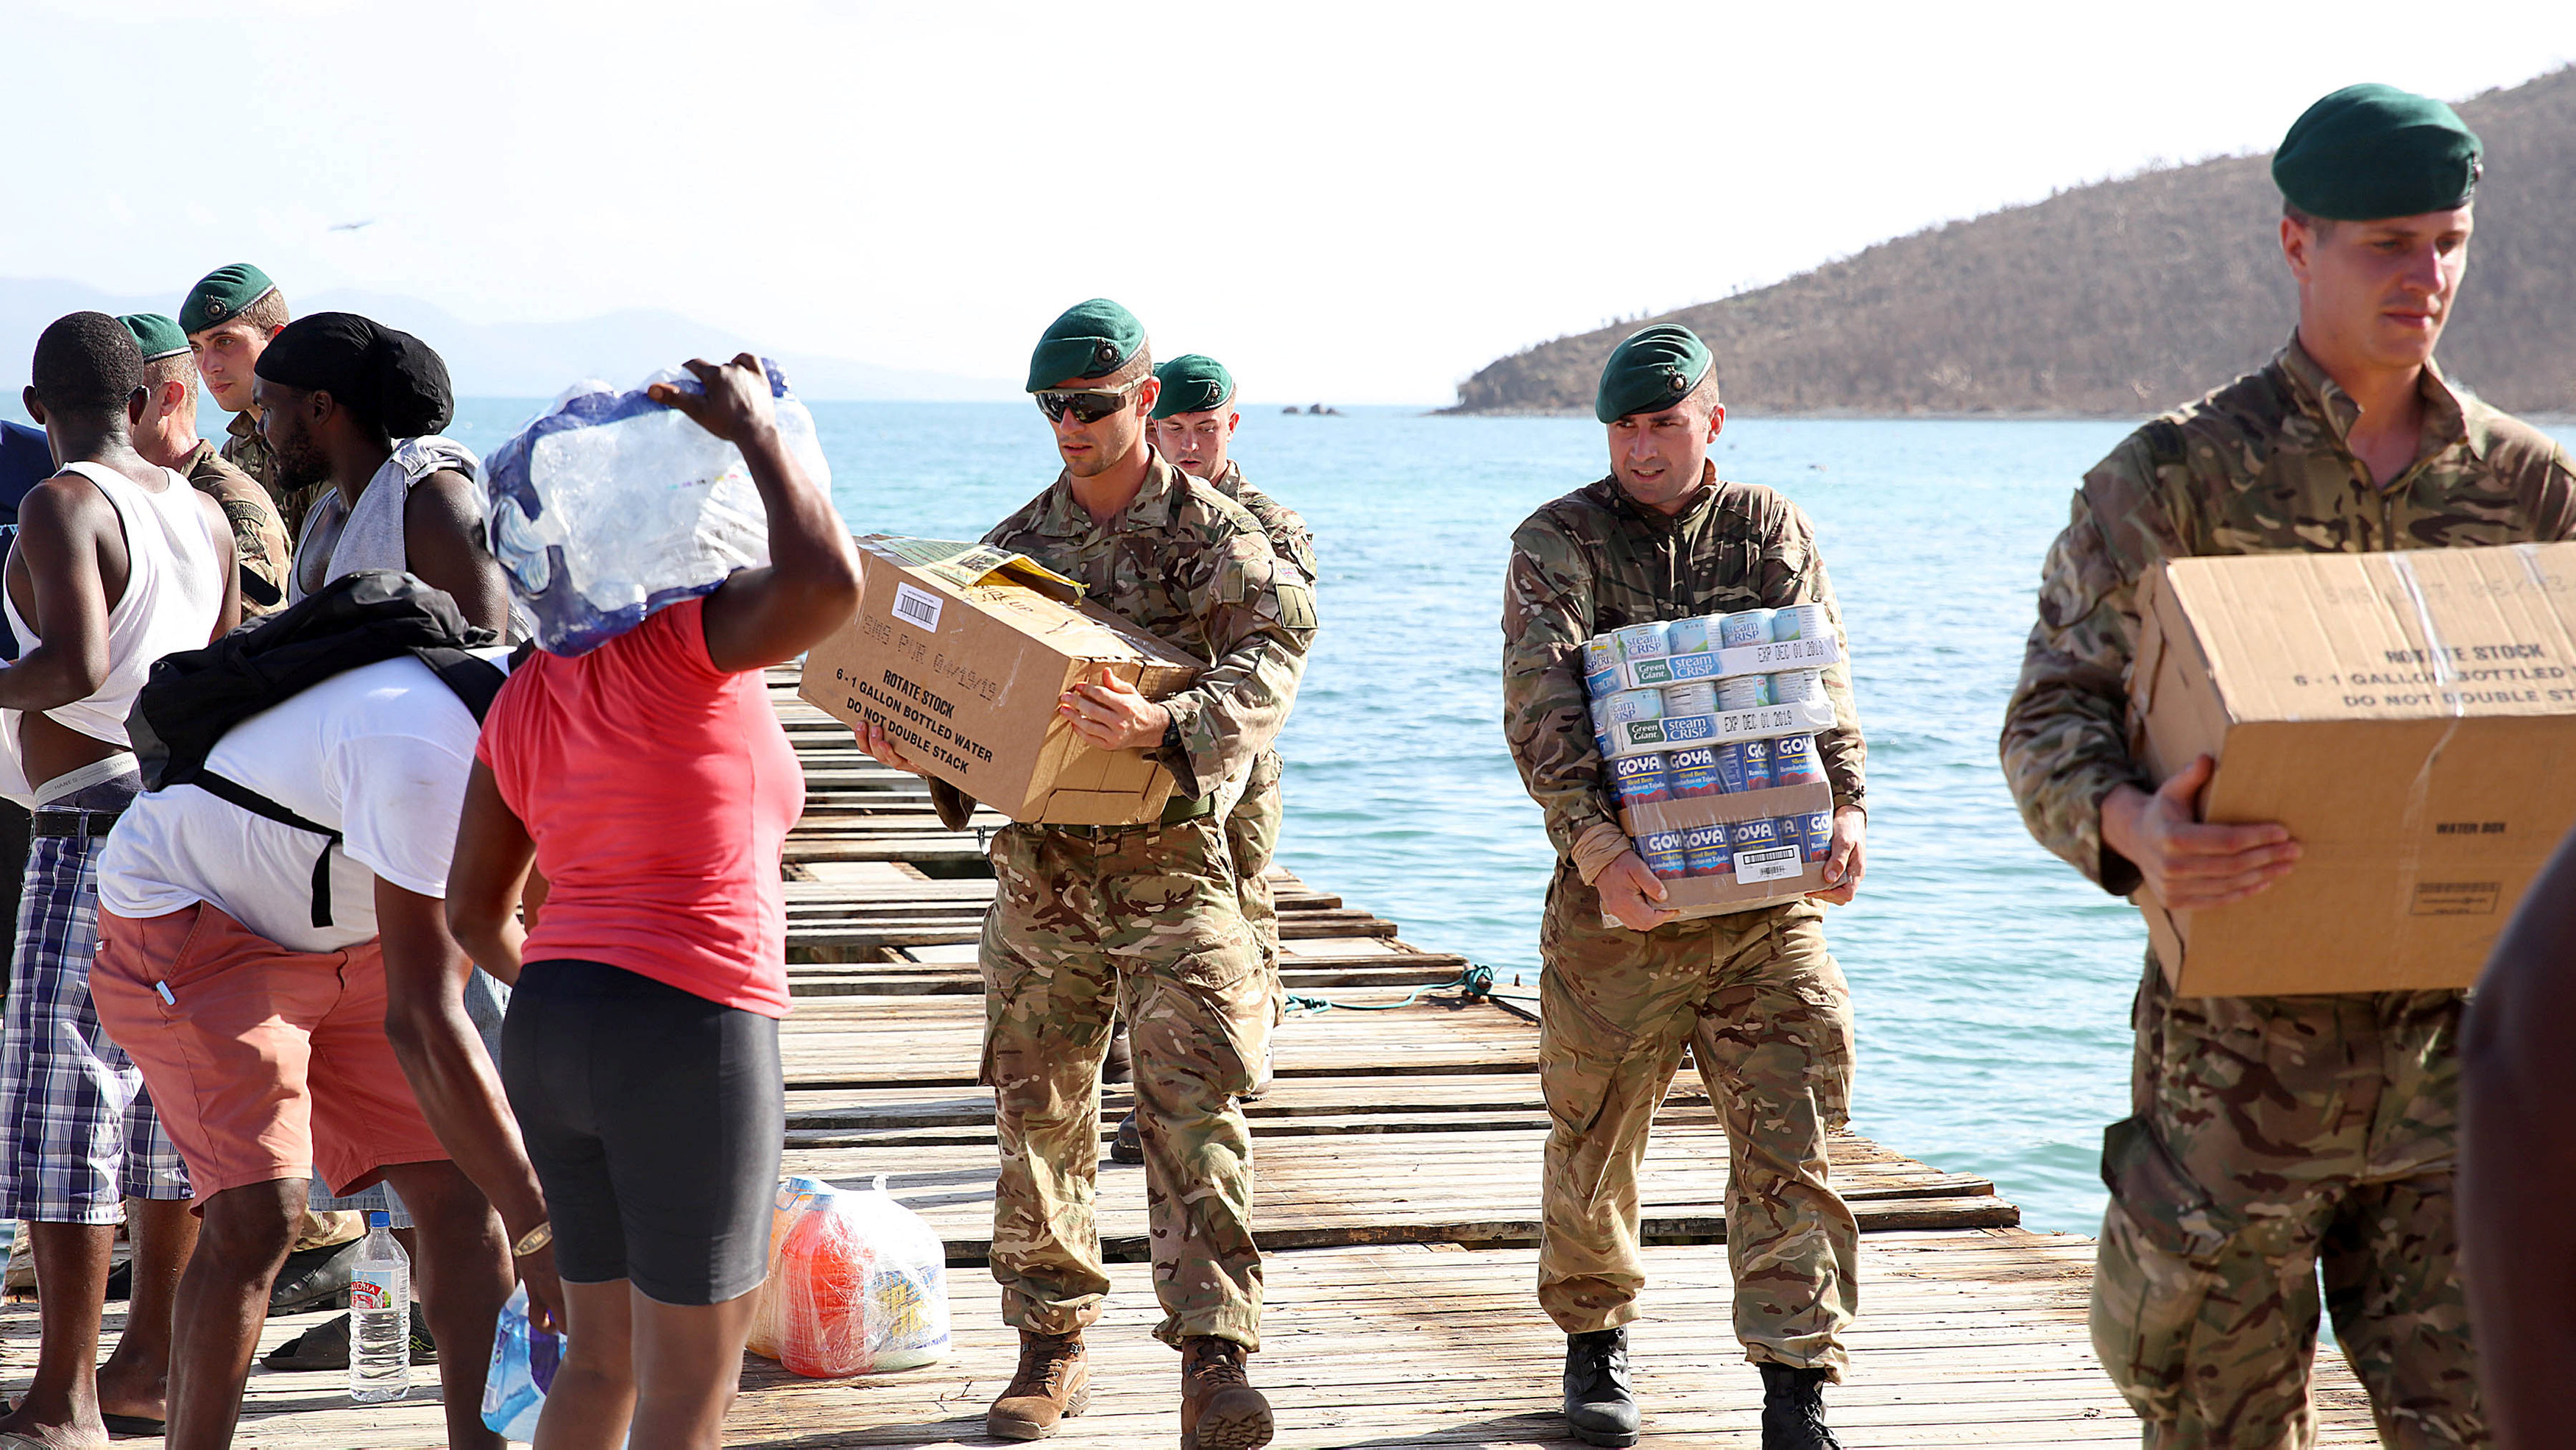 British Army Commandos take part in recovery efforts after hurricane Irma passed Tortola, in the British Virgin Islands, September 11, 2017. Picture taken September 11, 2017. Captain George Eatwell RM/Ministry of Defence handout via REUTERS